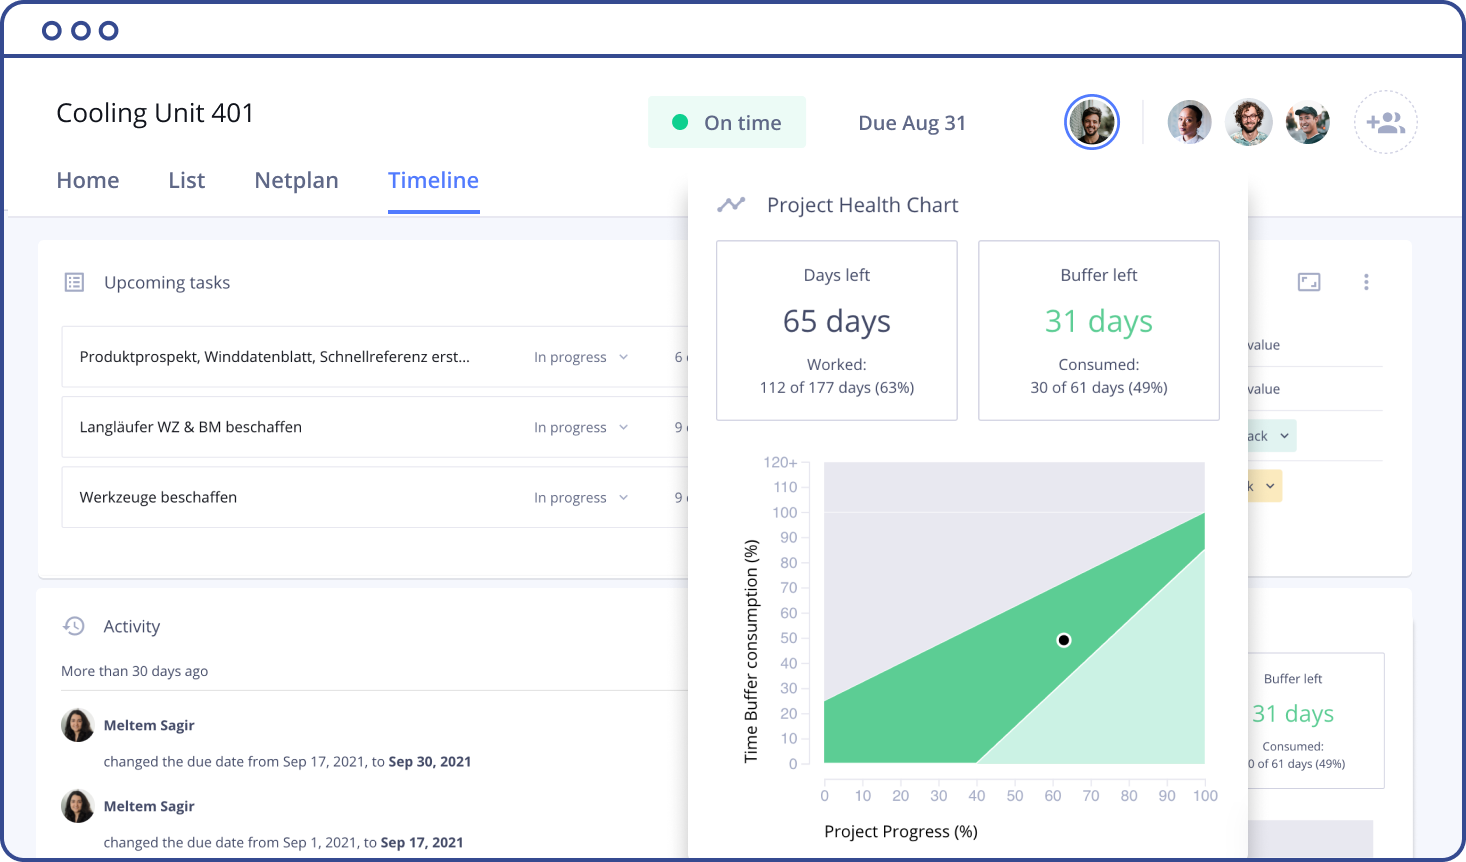 A screenshot of the Allex interface showing a detailed project report and health chart.